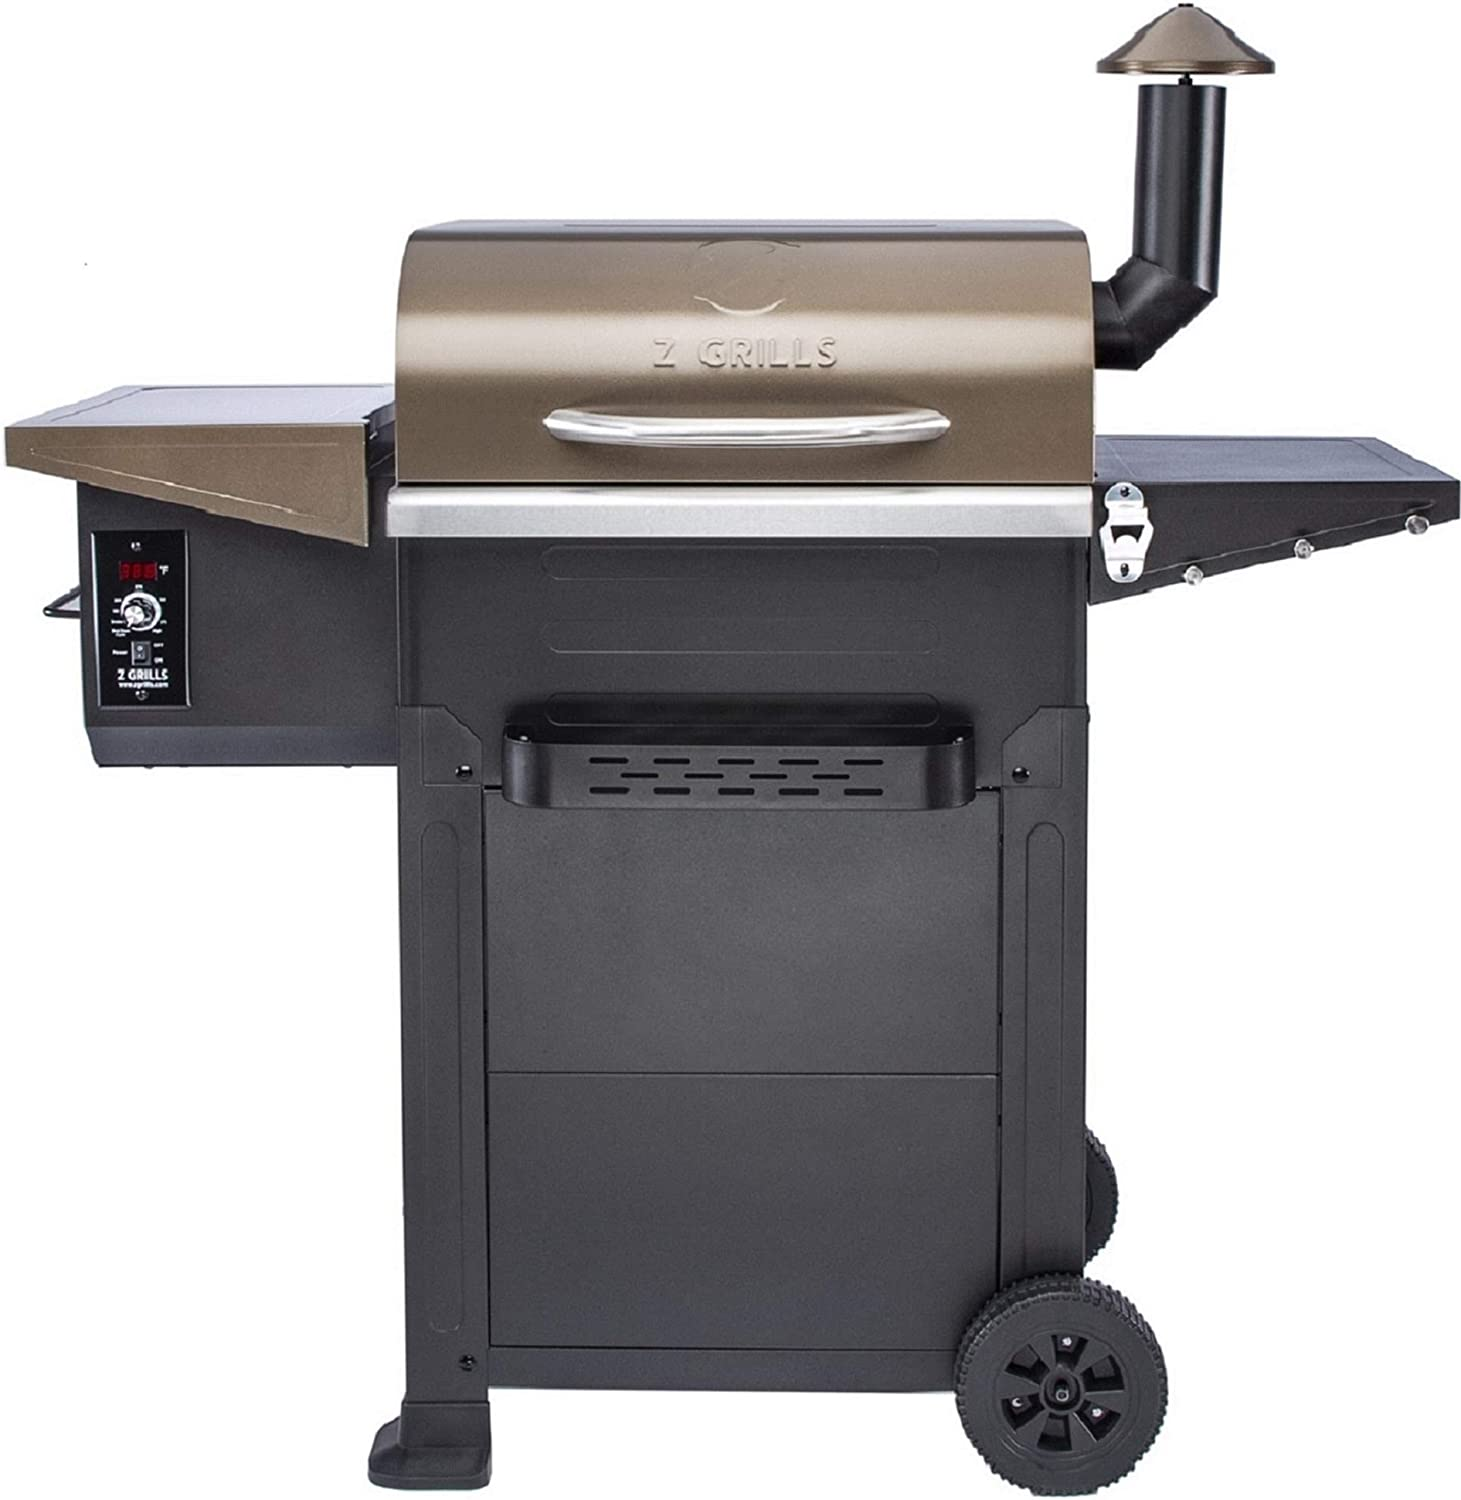 Z GRILLS ZPG-6002B 2020 New Model Wood Pellet Grill & Smoker 6 in 1 BBQ Grill Auto Temperature Control, 573, 601 sq in Copper